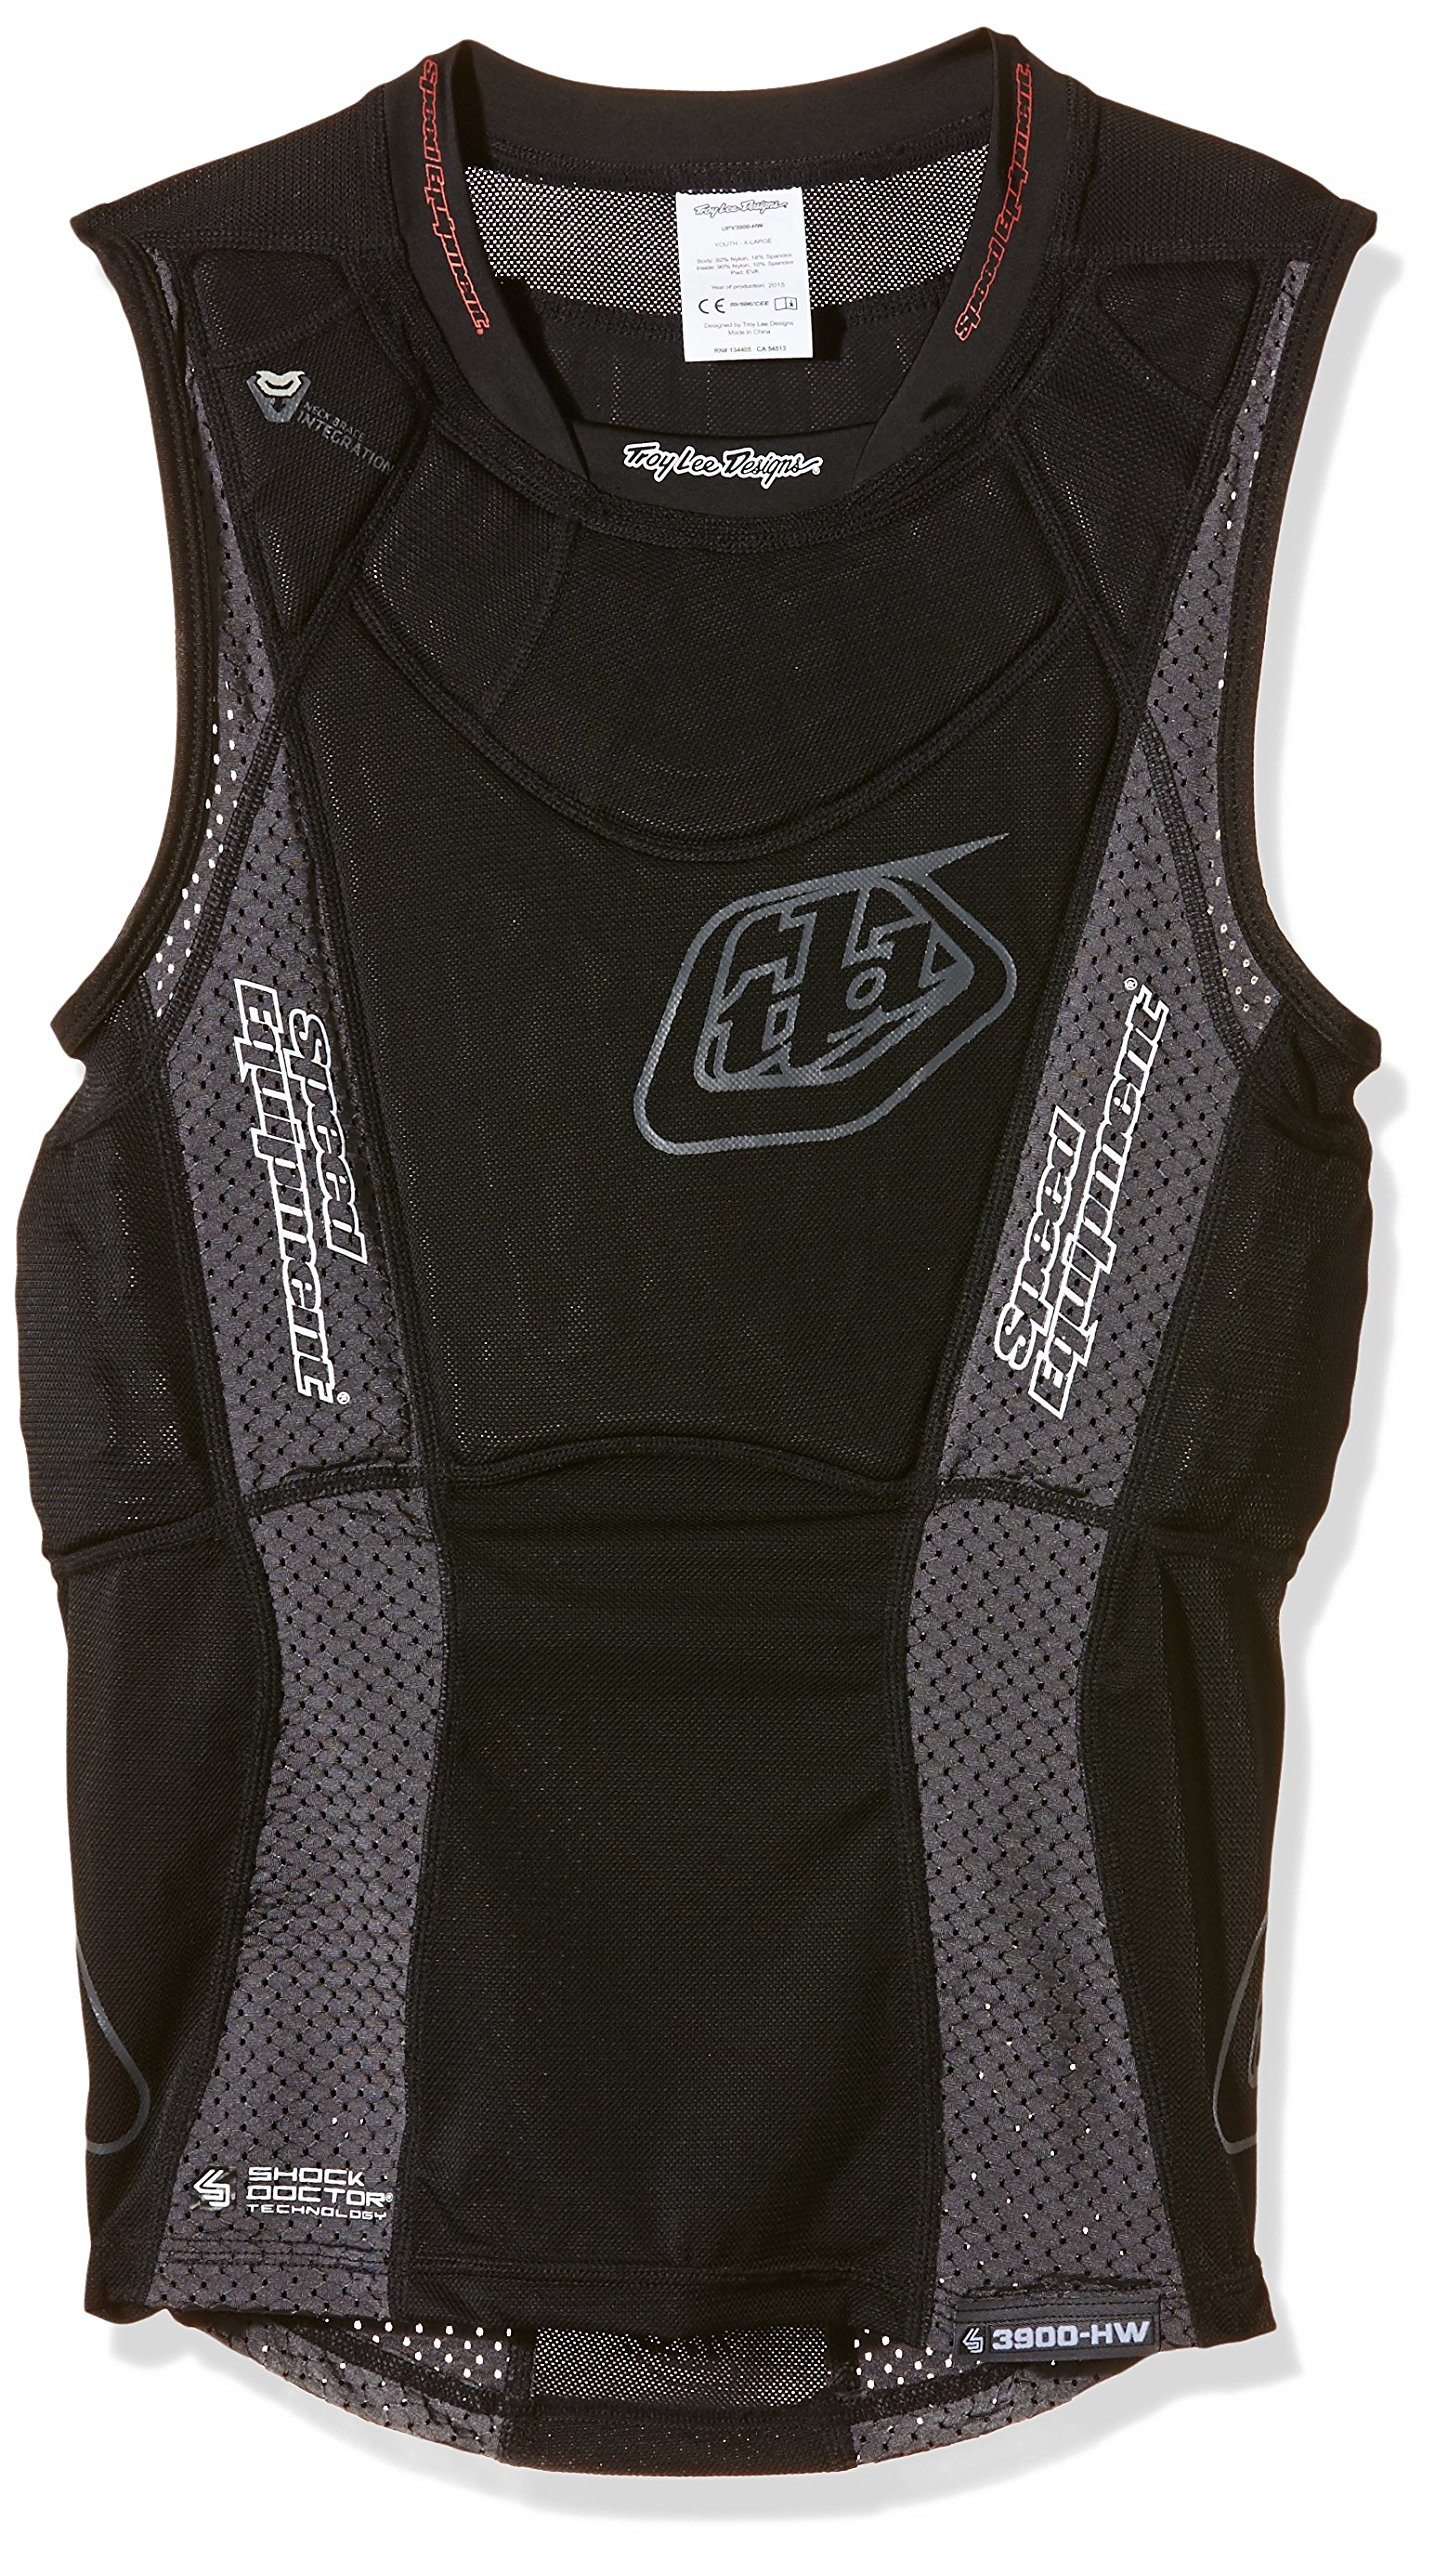 Troy Lee Designs Youth 3900 Ultra Protective Vest-YL by Troy Lee Designs